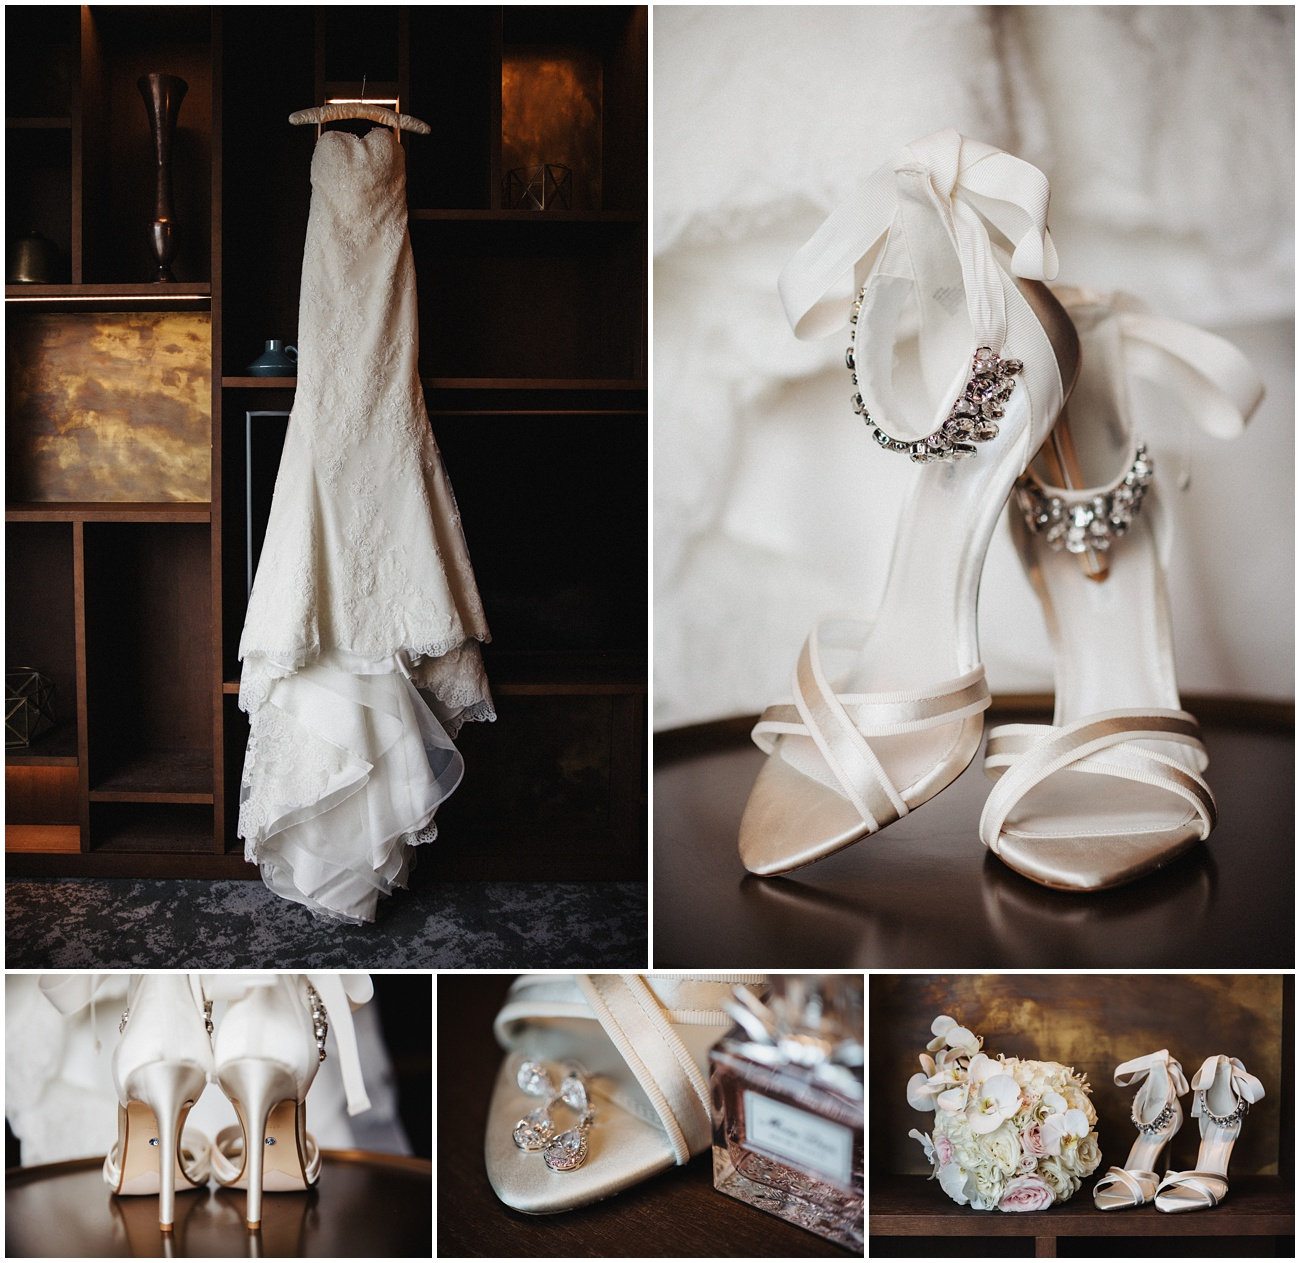 The brides white wedding dress, shoes, jewellery and flowers